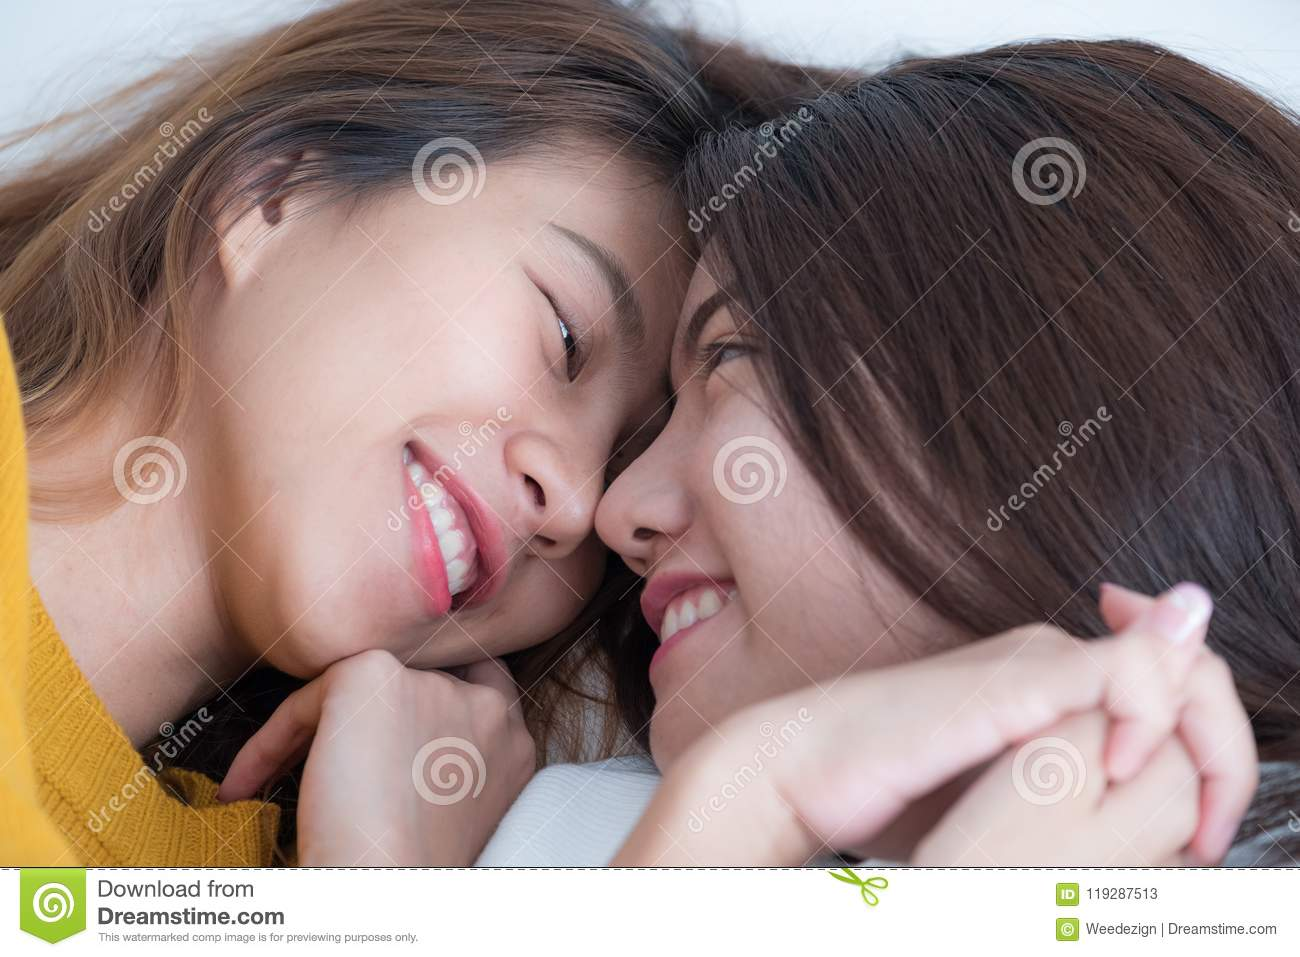 together Lesbian close